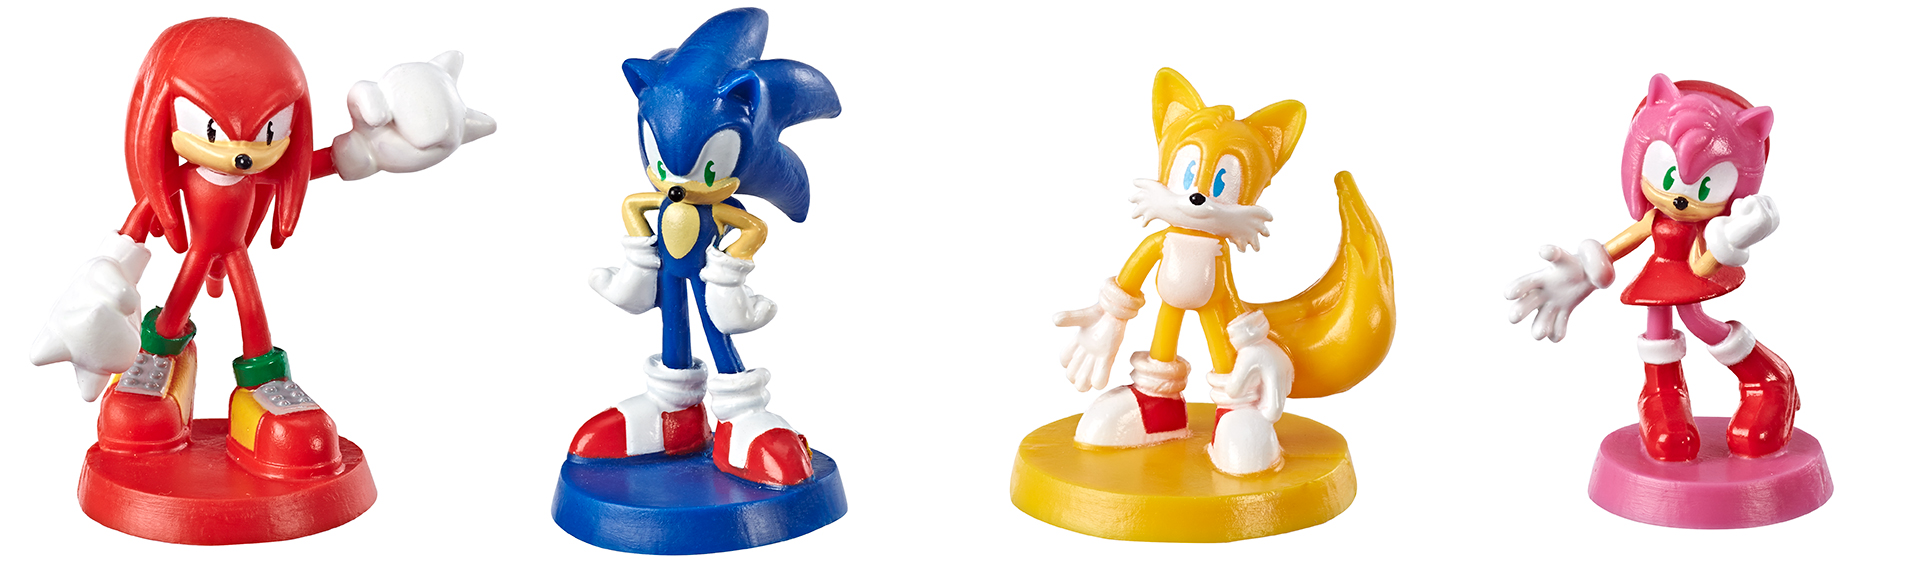 Monopoly Gamer: Sonic the Hedgehog Edition players' pieces